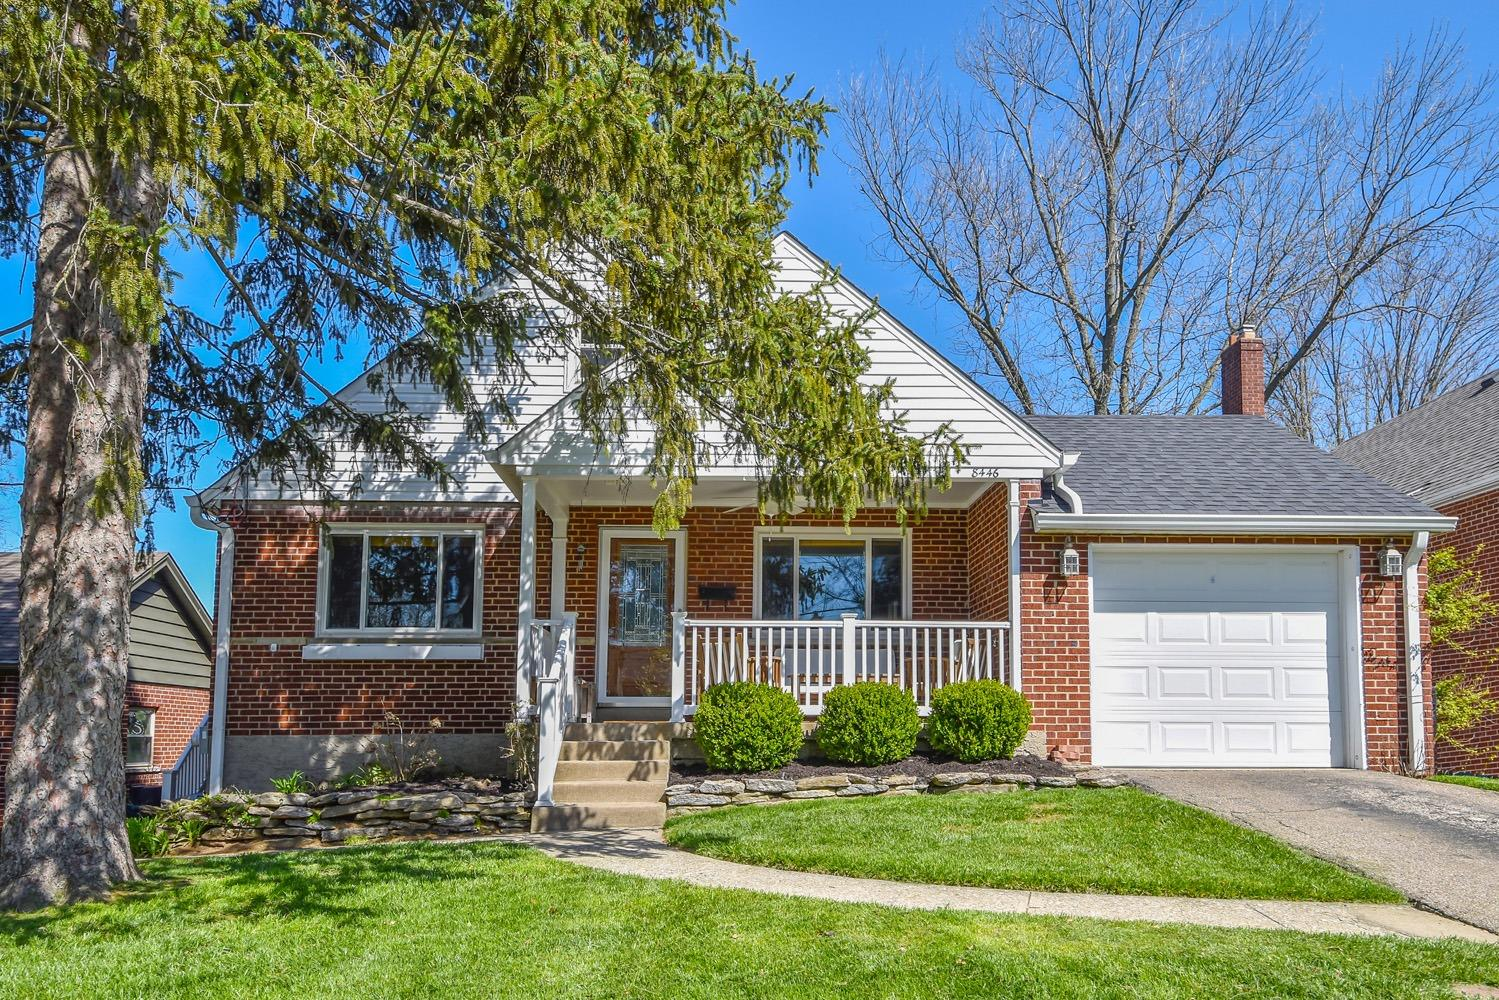 8446 Wexford Ave Dillonvale, OH